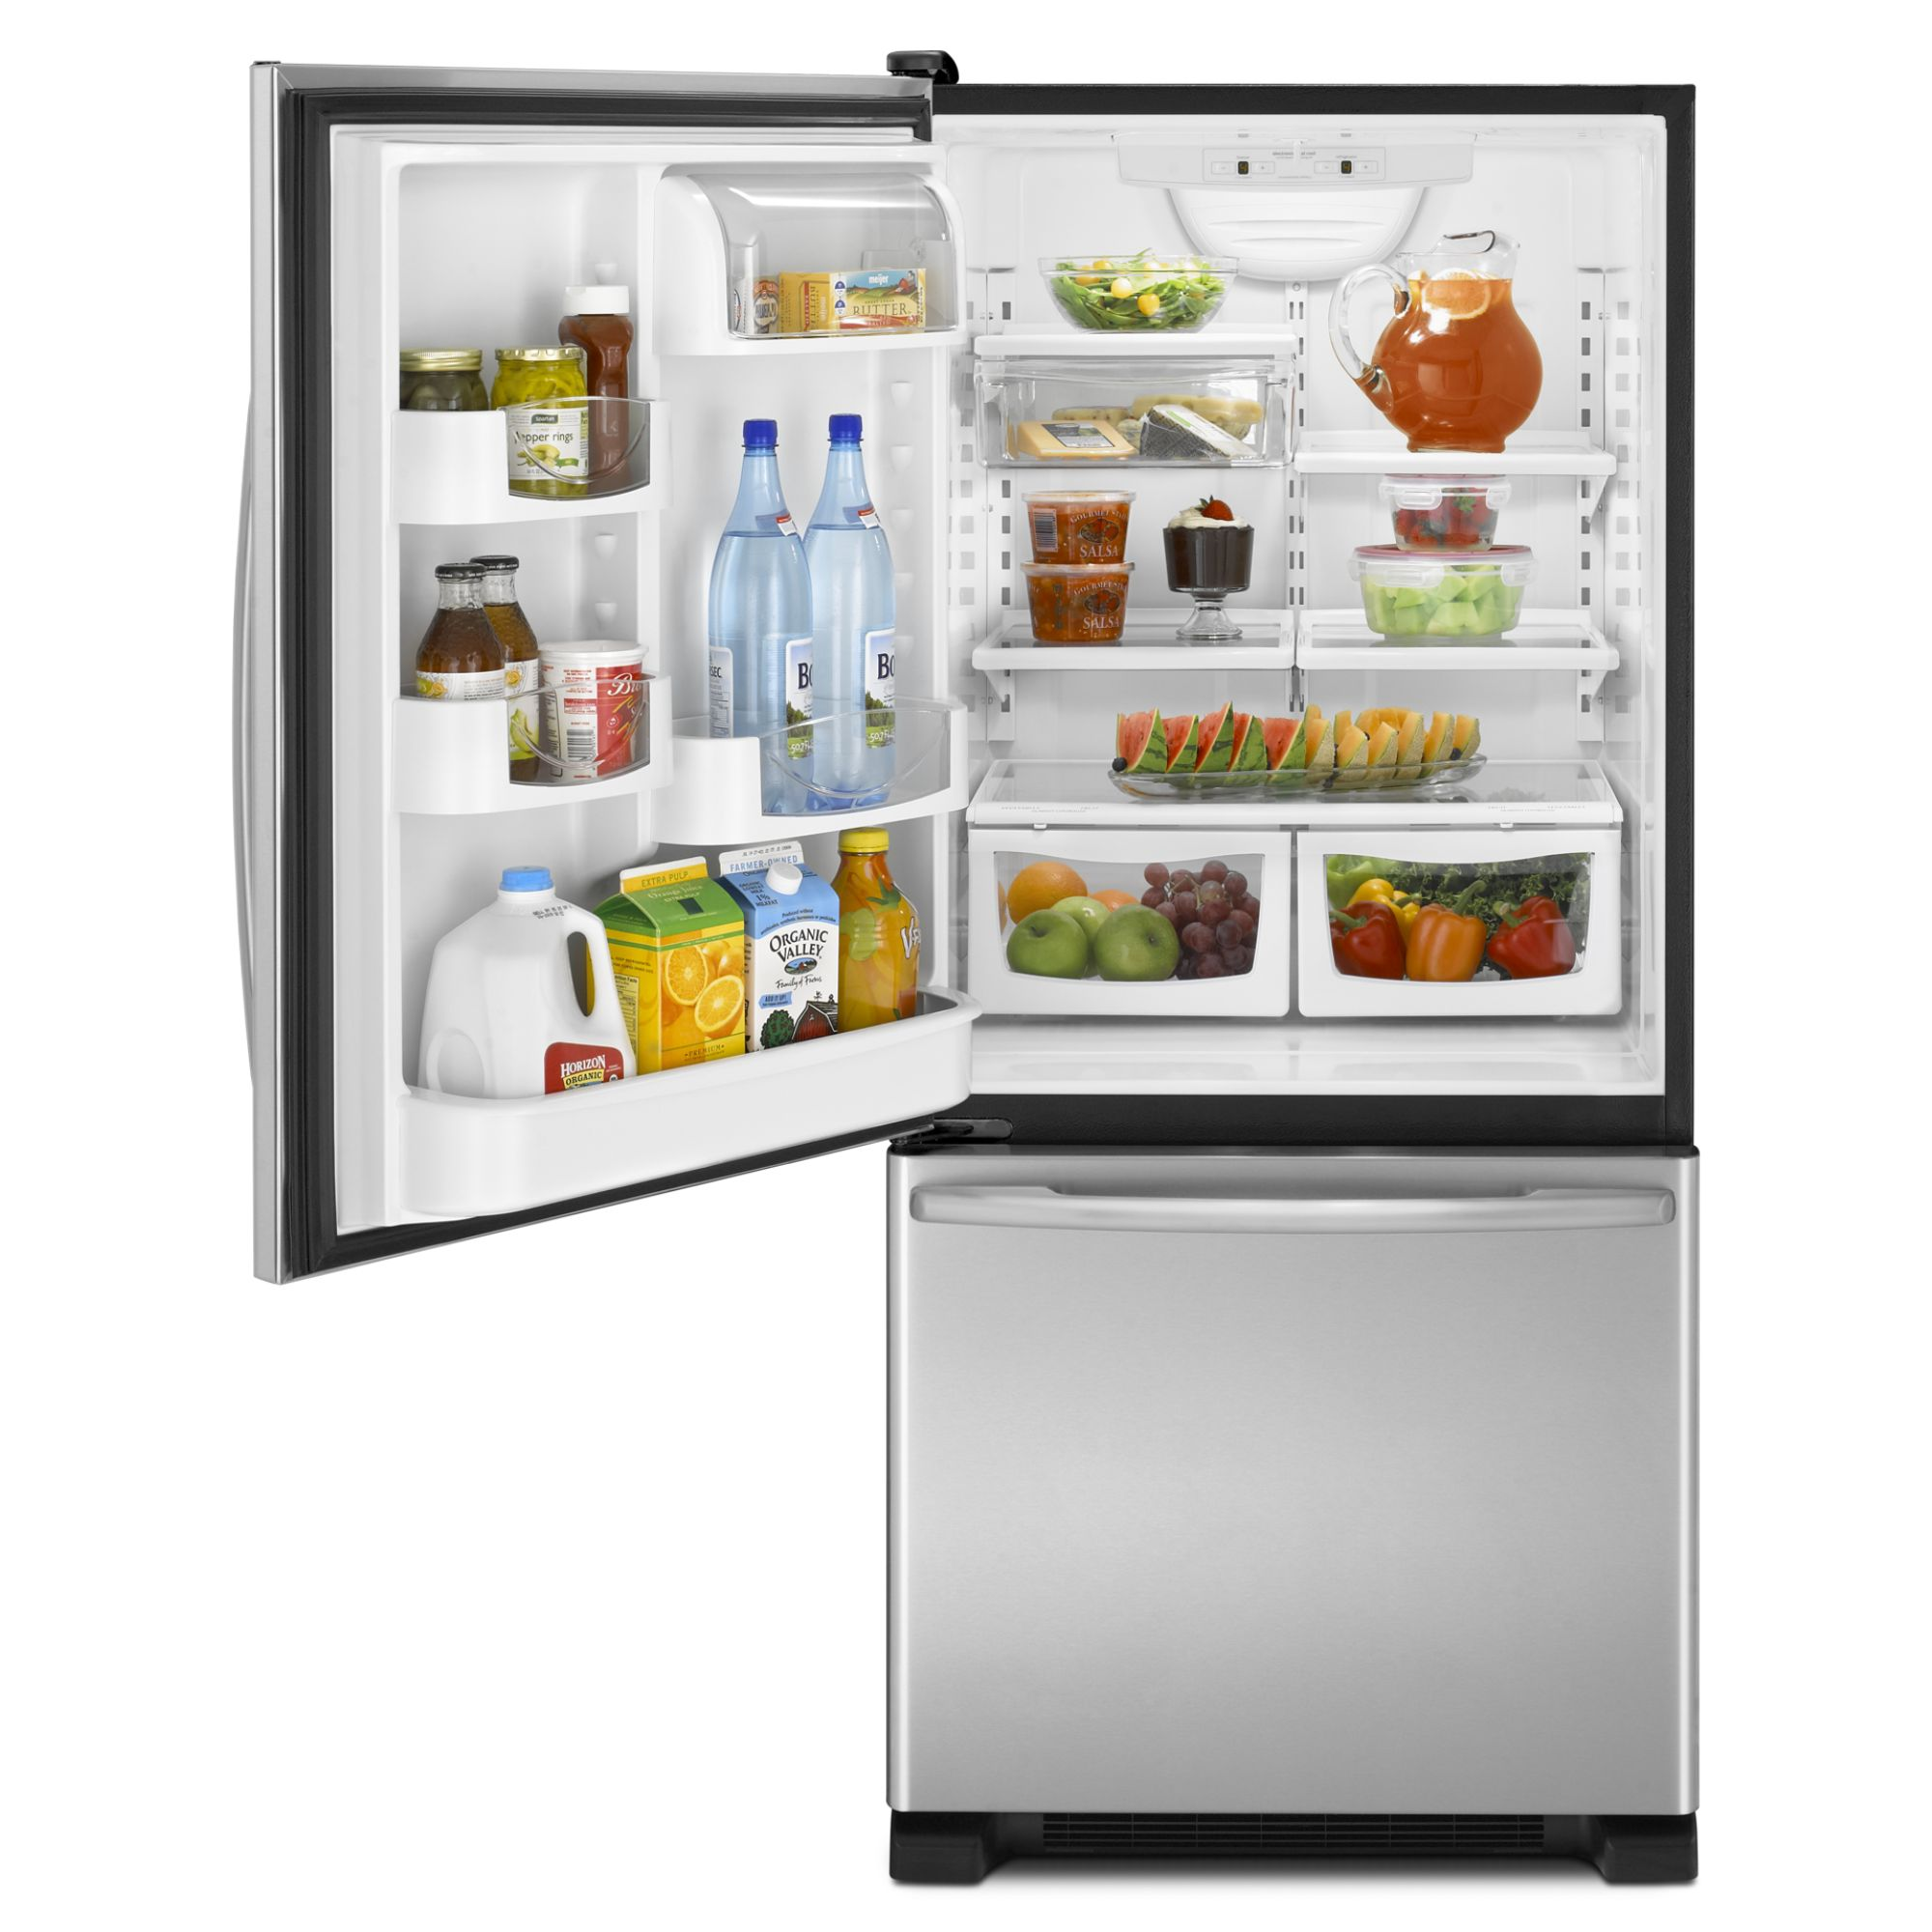 Maytag 21.9 cu. ft. Bottom-Freezer Refrigerator - Left Swing Door - Stainless Steel